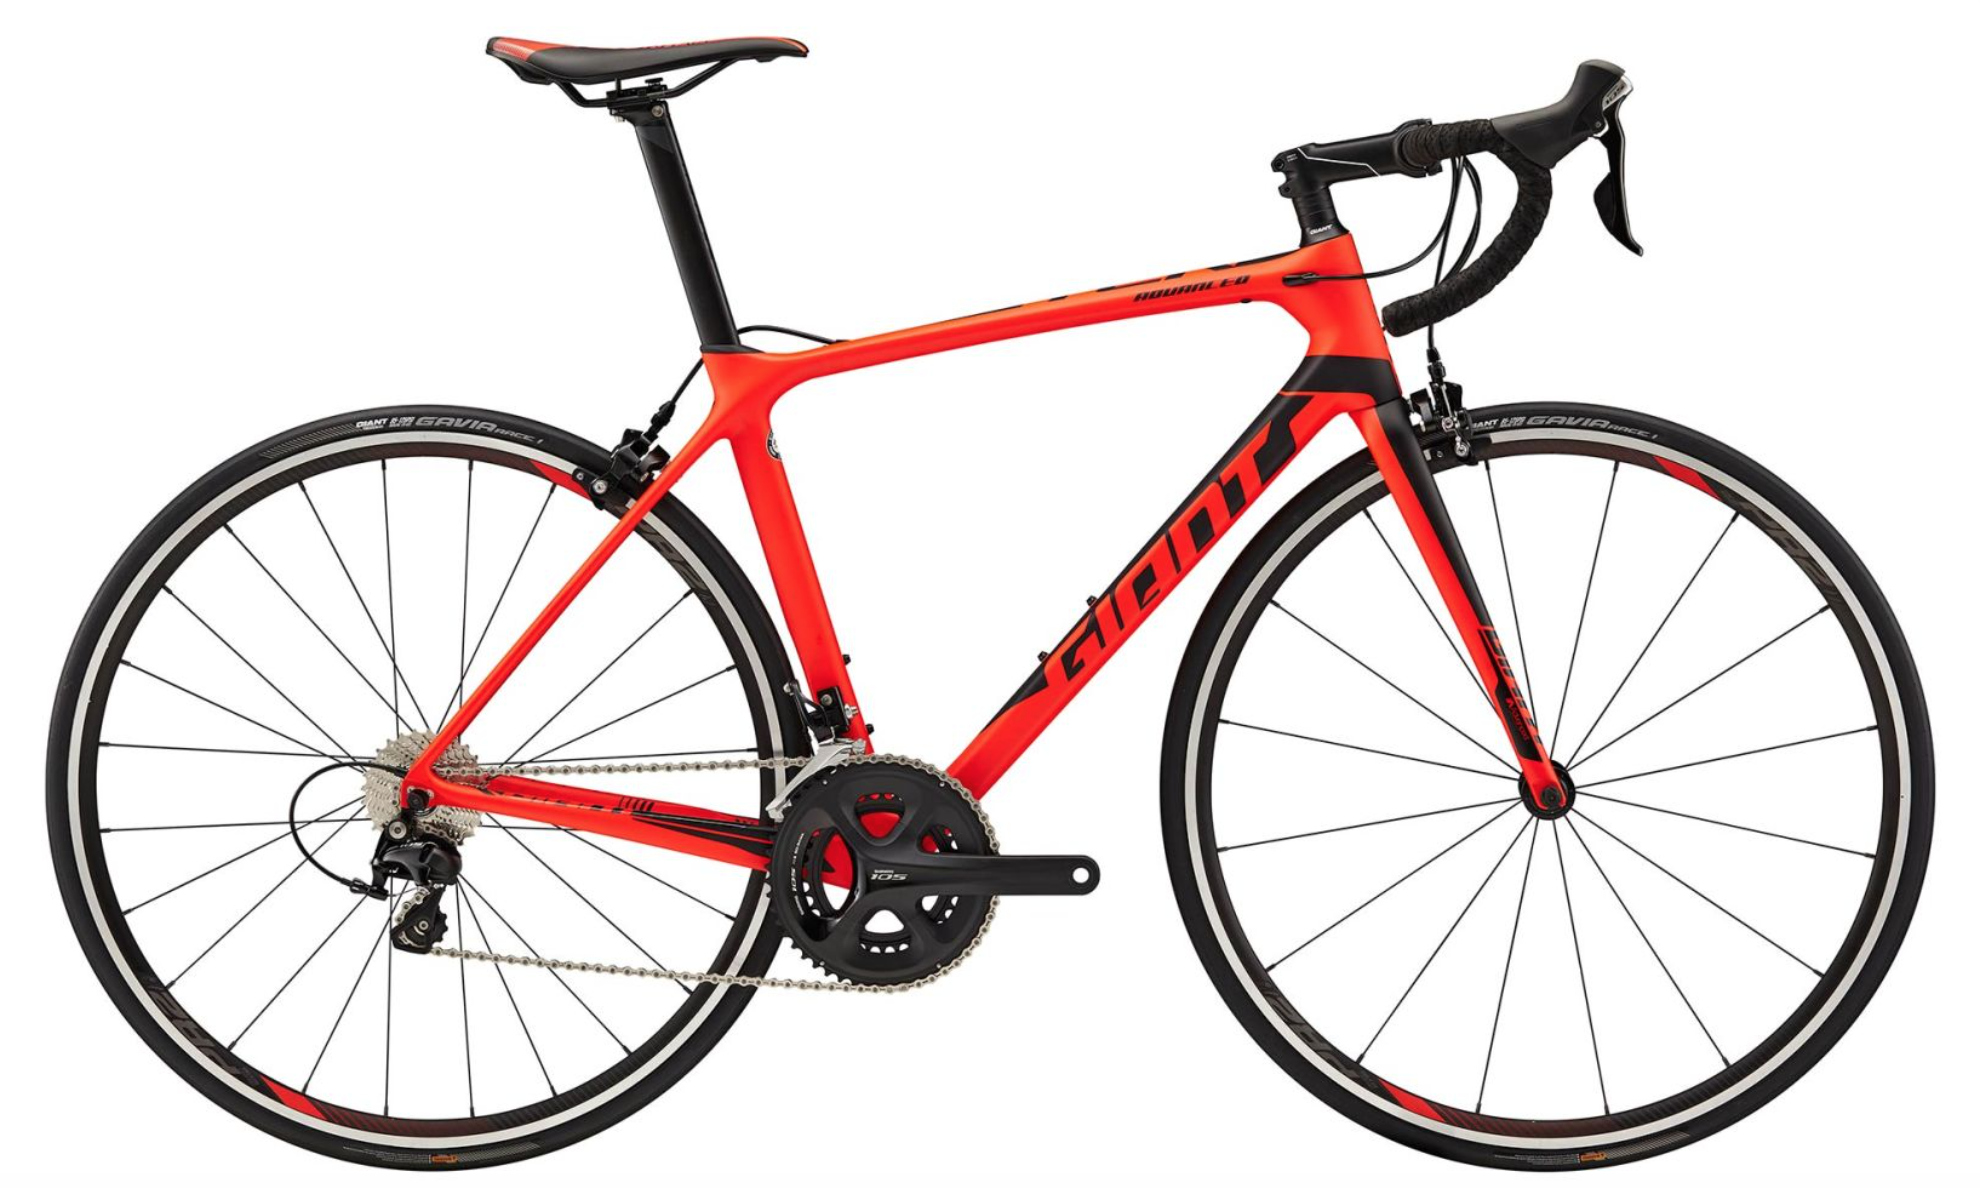 2018 Giant TCR Advanced 2 Carbon Road Bike Red £1,159 20